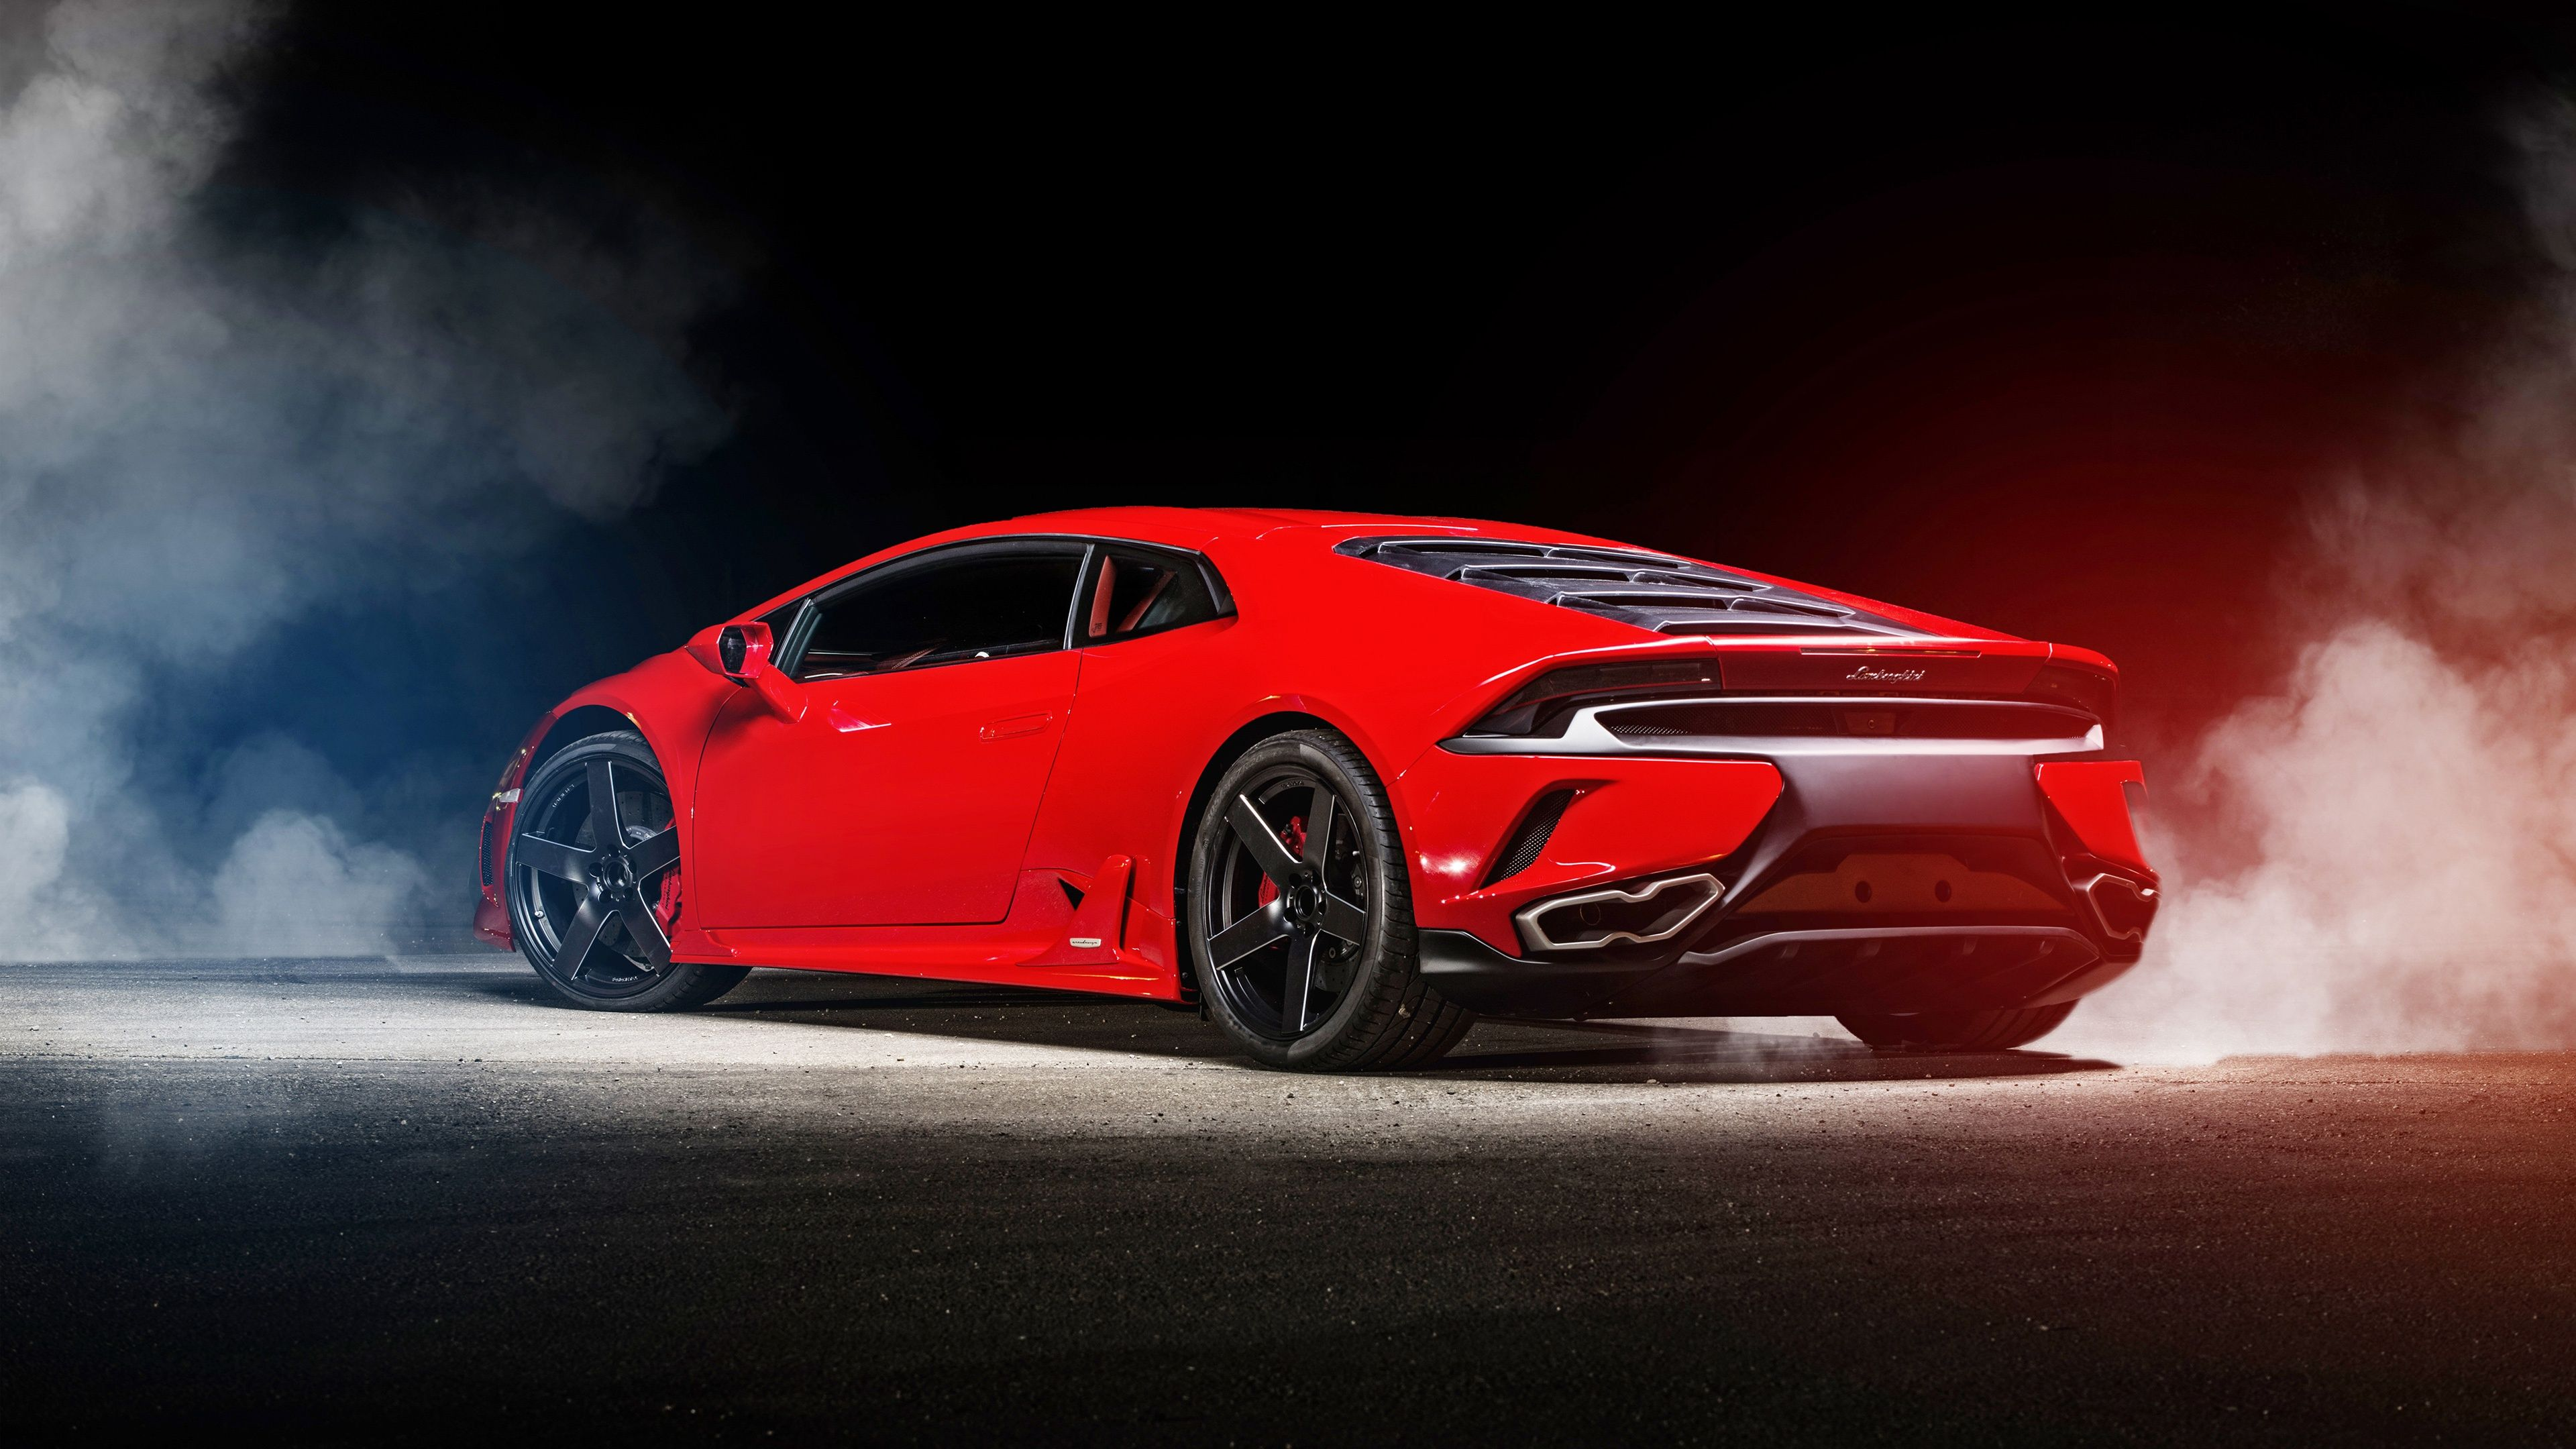 Adv Wheels Lamborghini Huracan Cars HD K Wallpapers